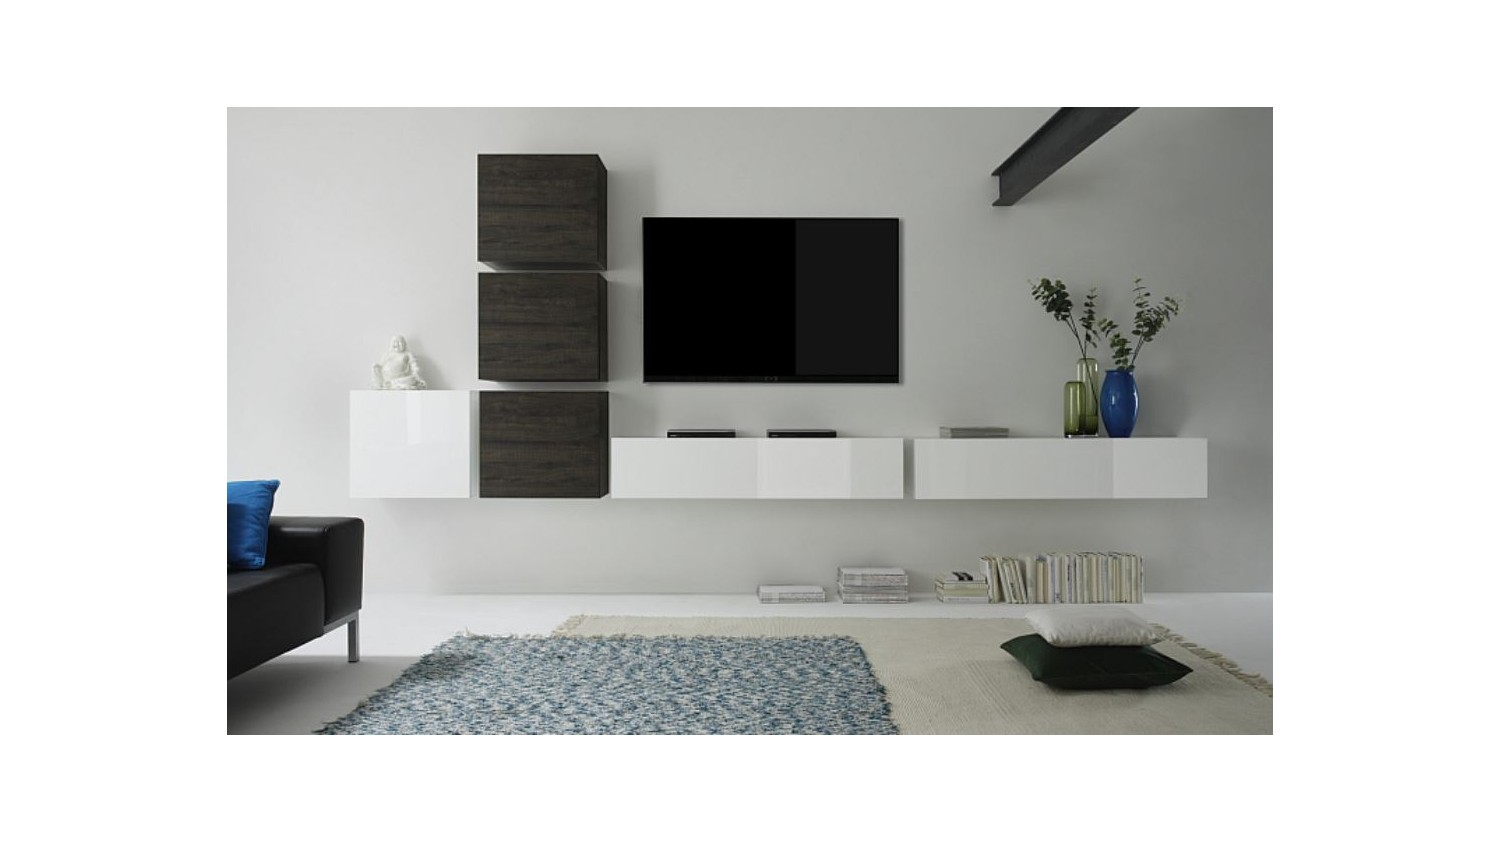 Composici N Sal N Tv Kubbe 9 Muebles De Tv Decoraci N Del Sal N # Muebles Suspendidos Para Tv